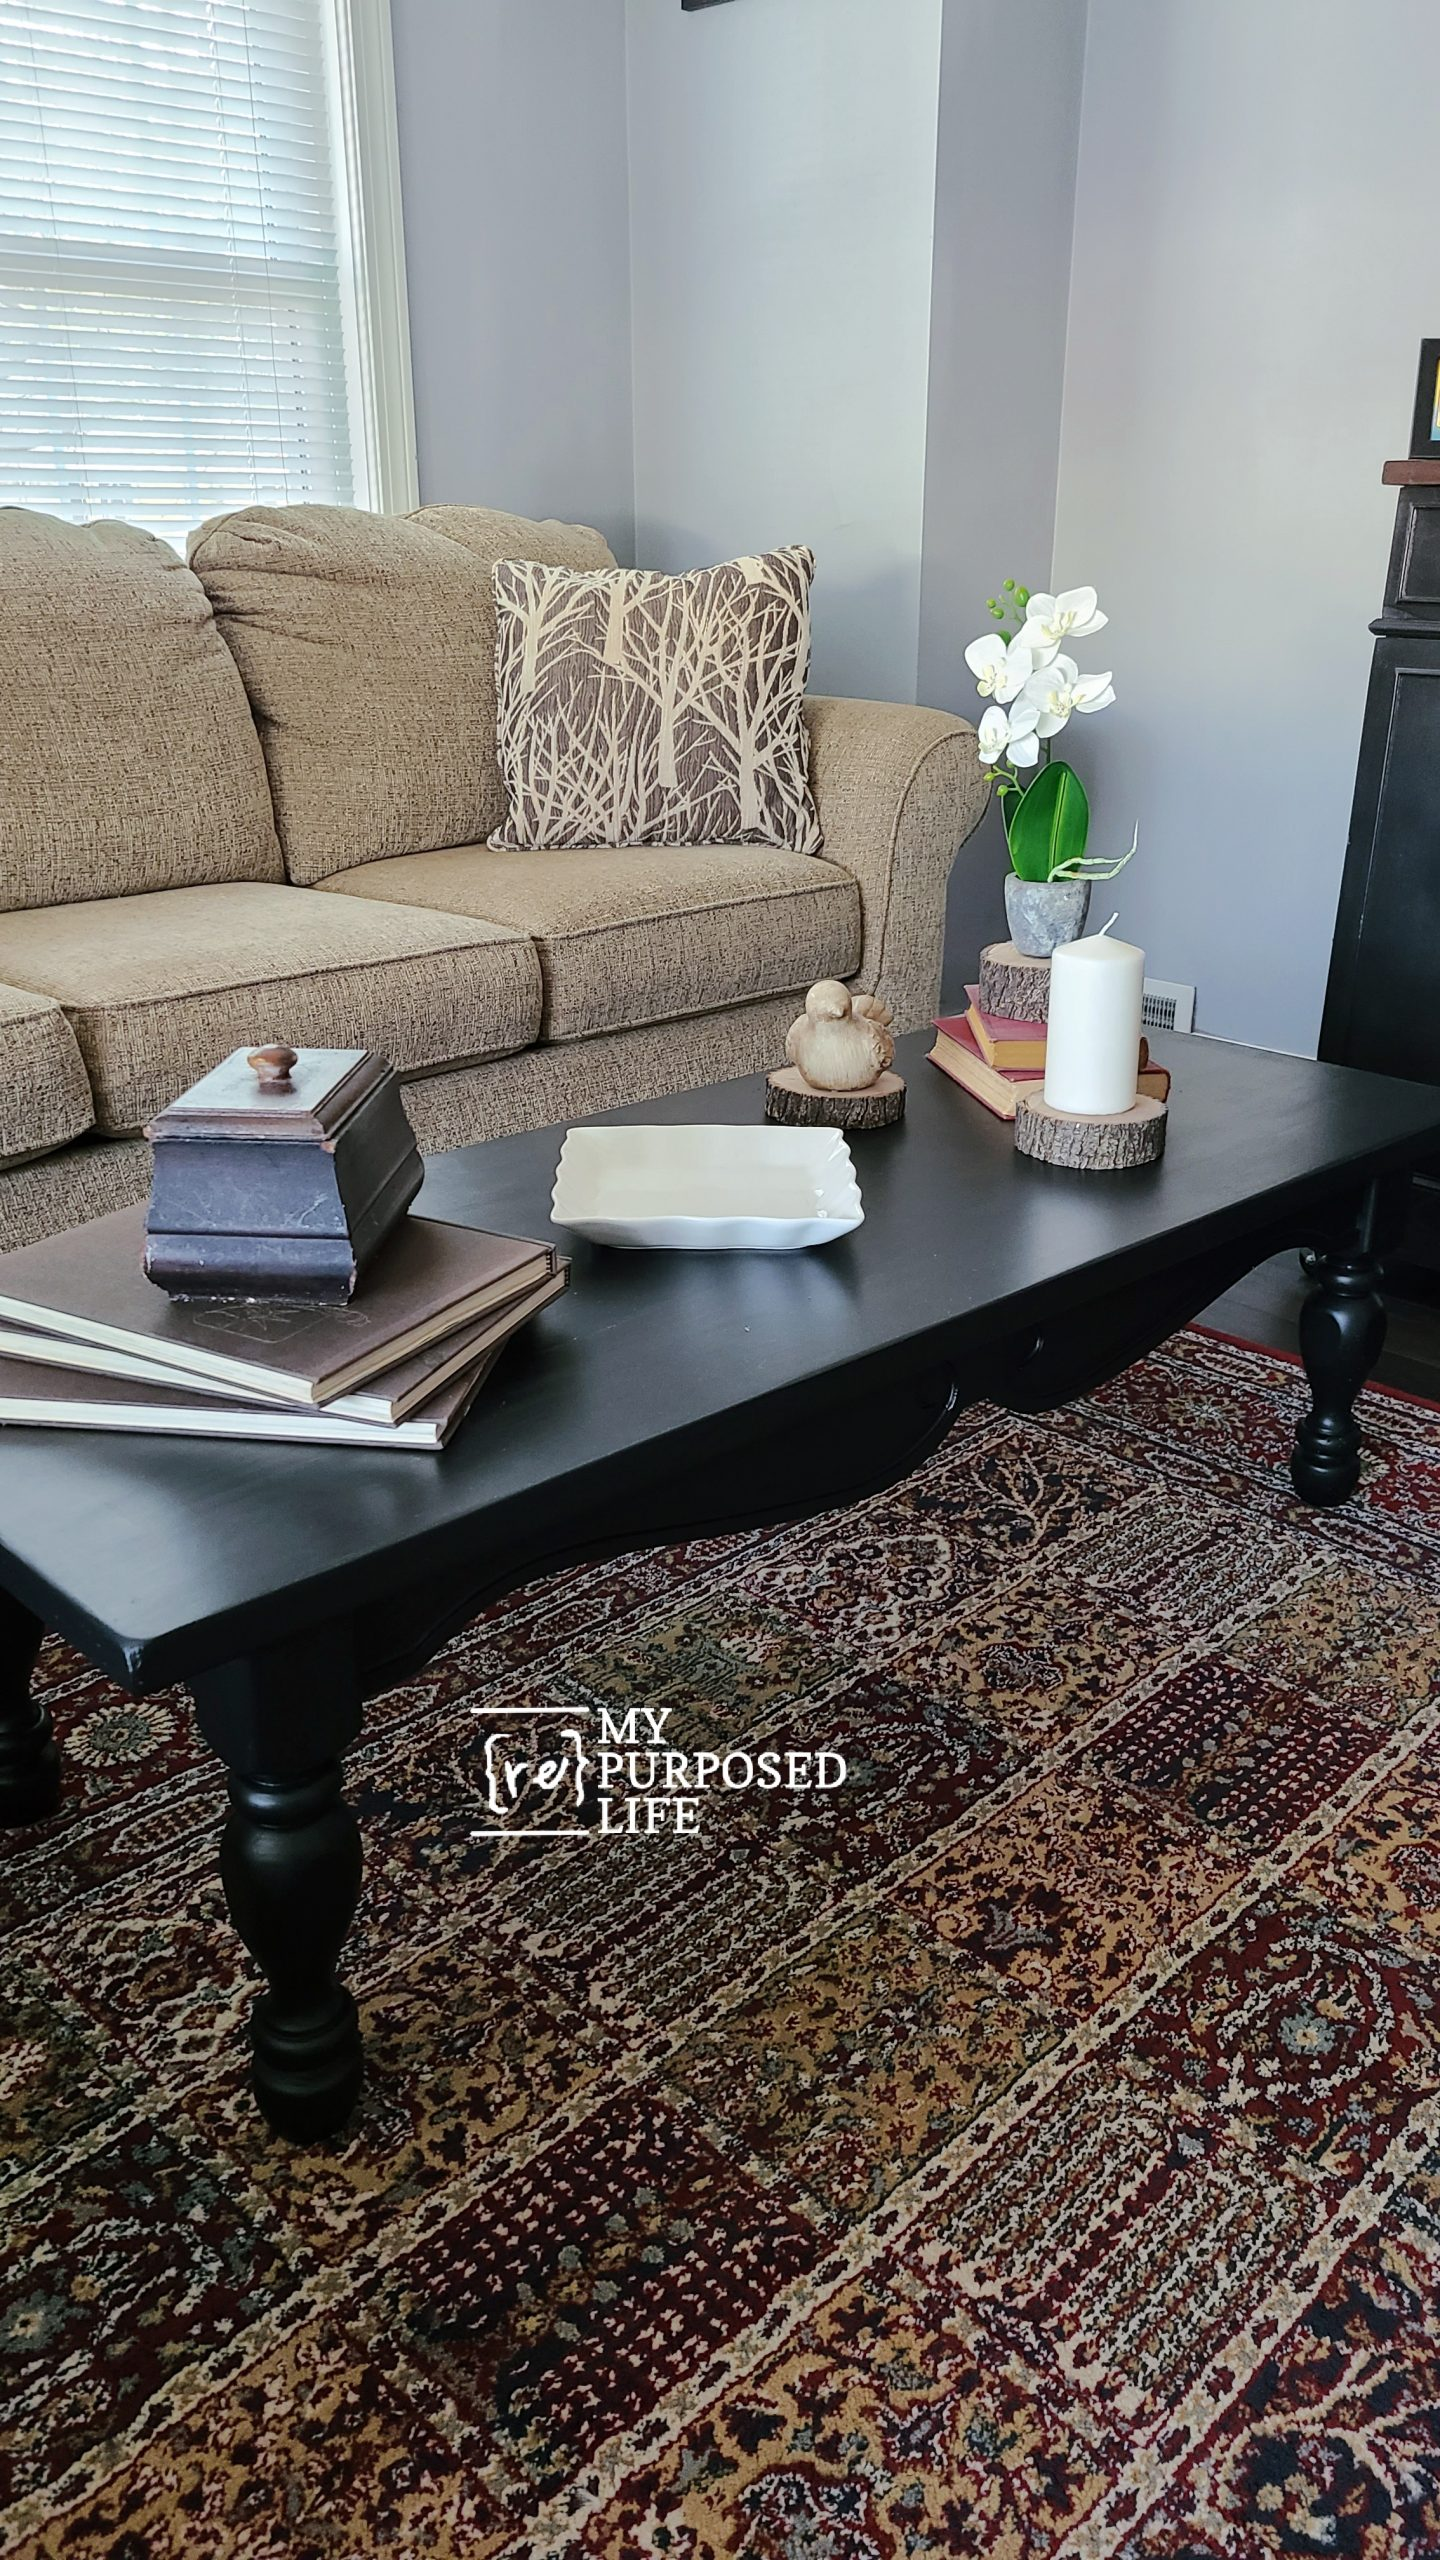 A thrift store coffee table makeover tutorial that will shock you! Get the perfect black paint finish without a paint sprayer. #MyRepurposedLife #repurposed #refurbished #thriftstore #coffeetable via @repurposedlife